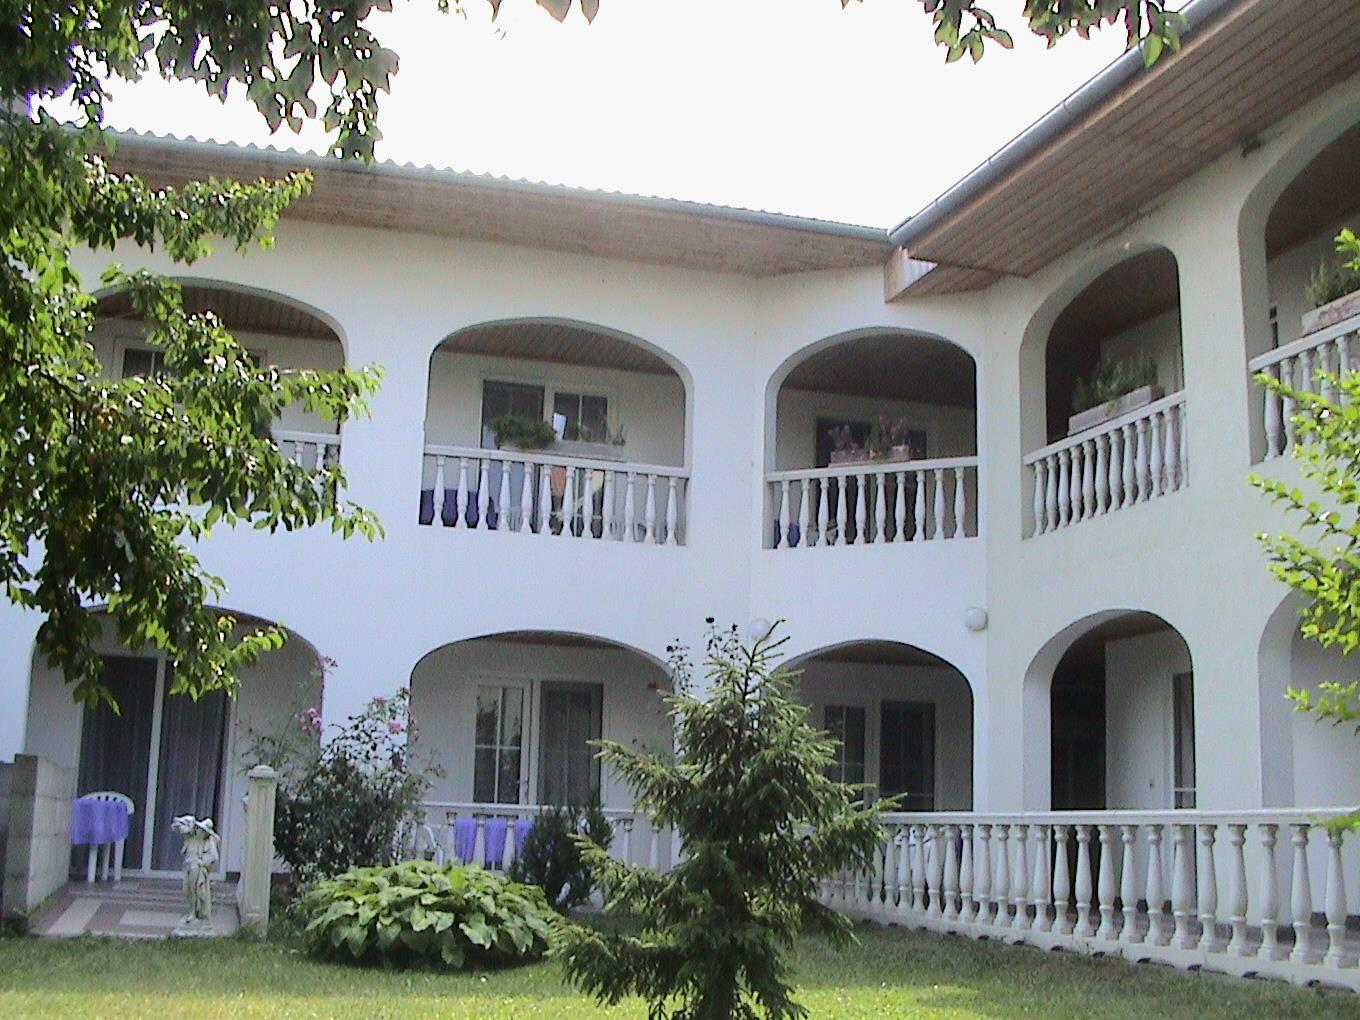 Holiday apartment Rosenhof Appartementhaus Appartement 65 m² (2008889), Podersdorf am See, Lake Neusiedl, Burgenland, Austria, picture 1